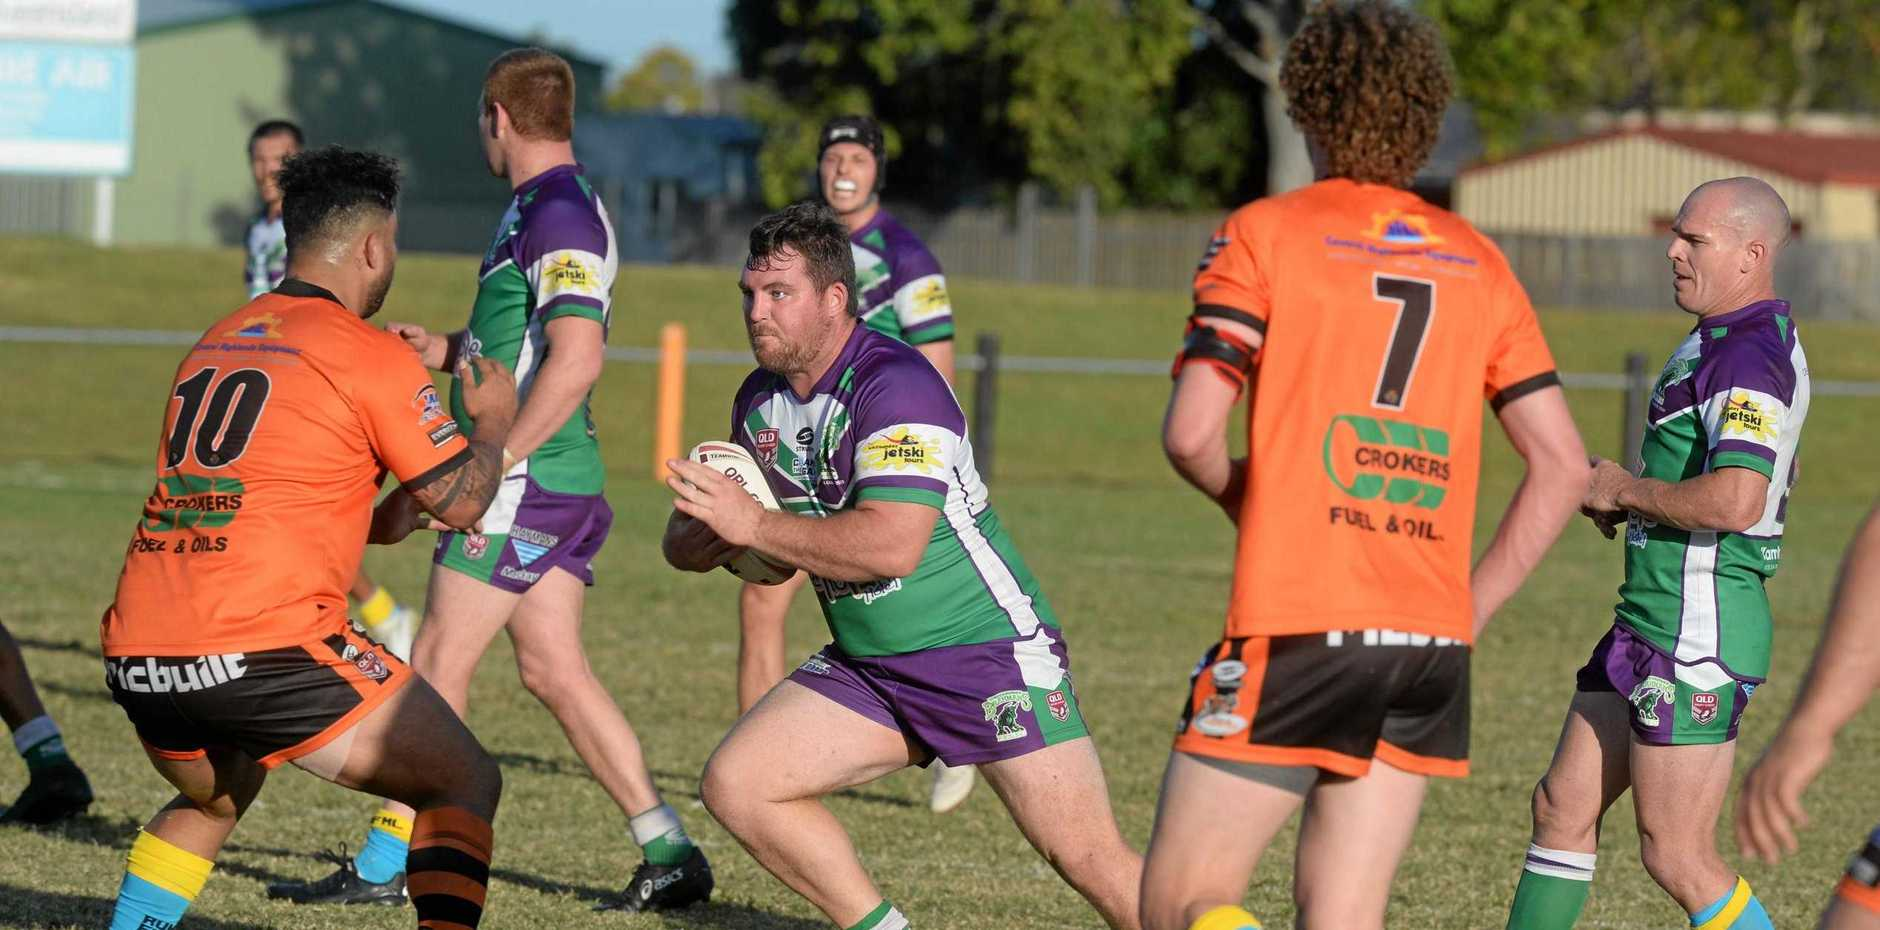 Whitsunday Brahmans will clash with Wests Tigers in the A-Grade men's Mackay rugby league grand final.